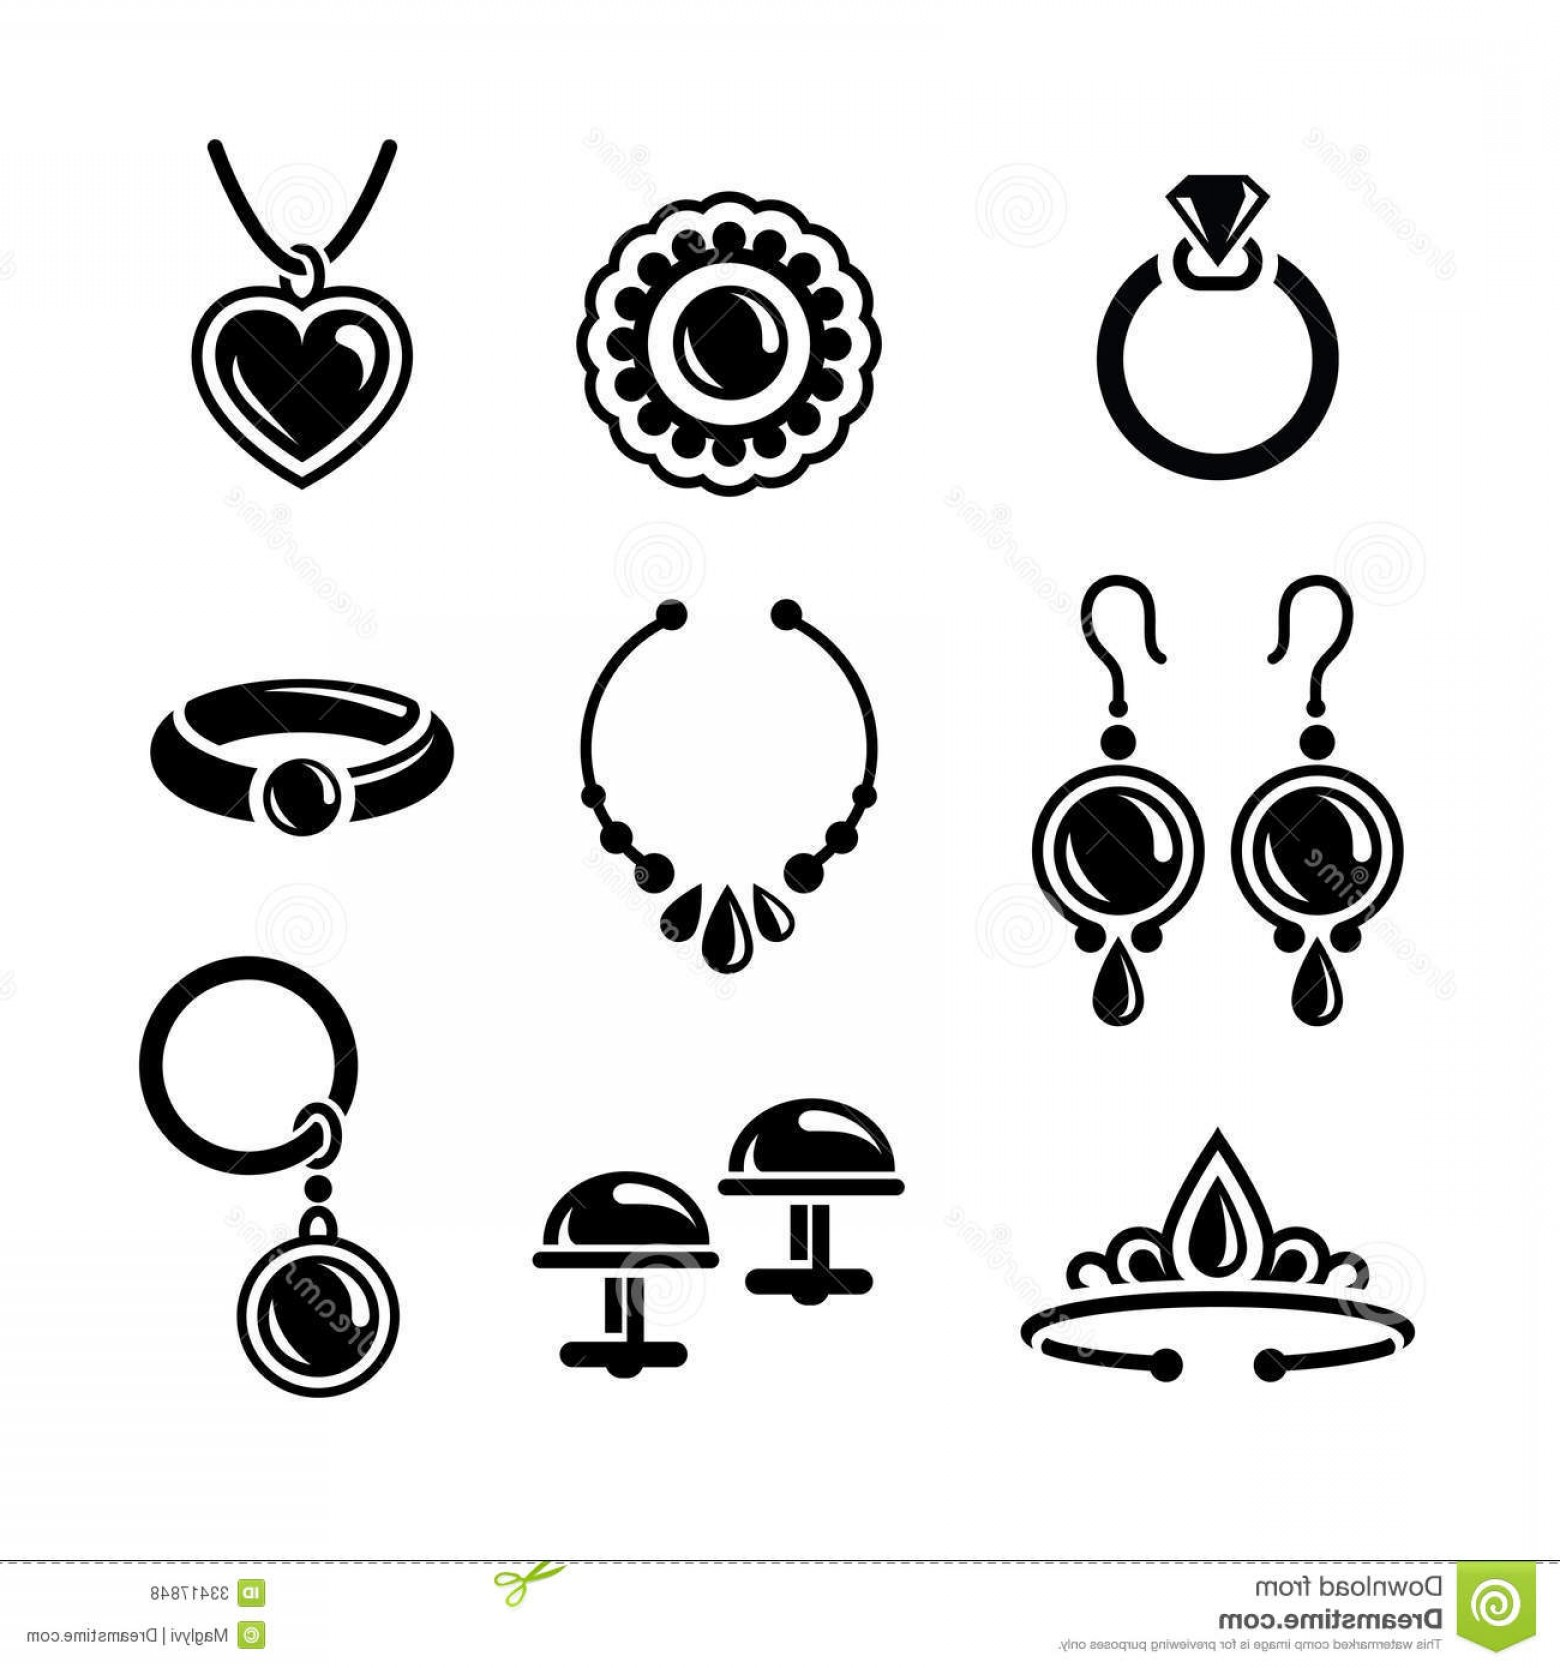 Jewelry Vector Line Art: Royalty Free Stock Photos Jewelry Icons Set Vector Image